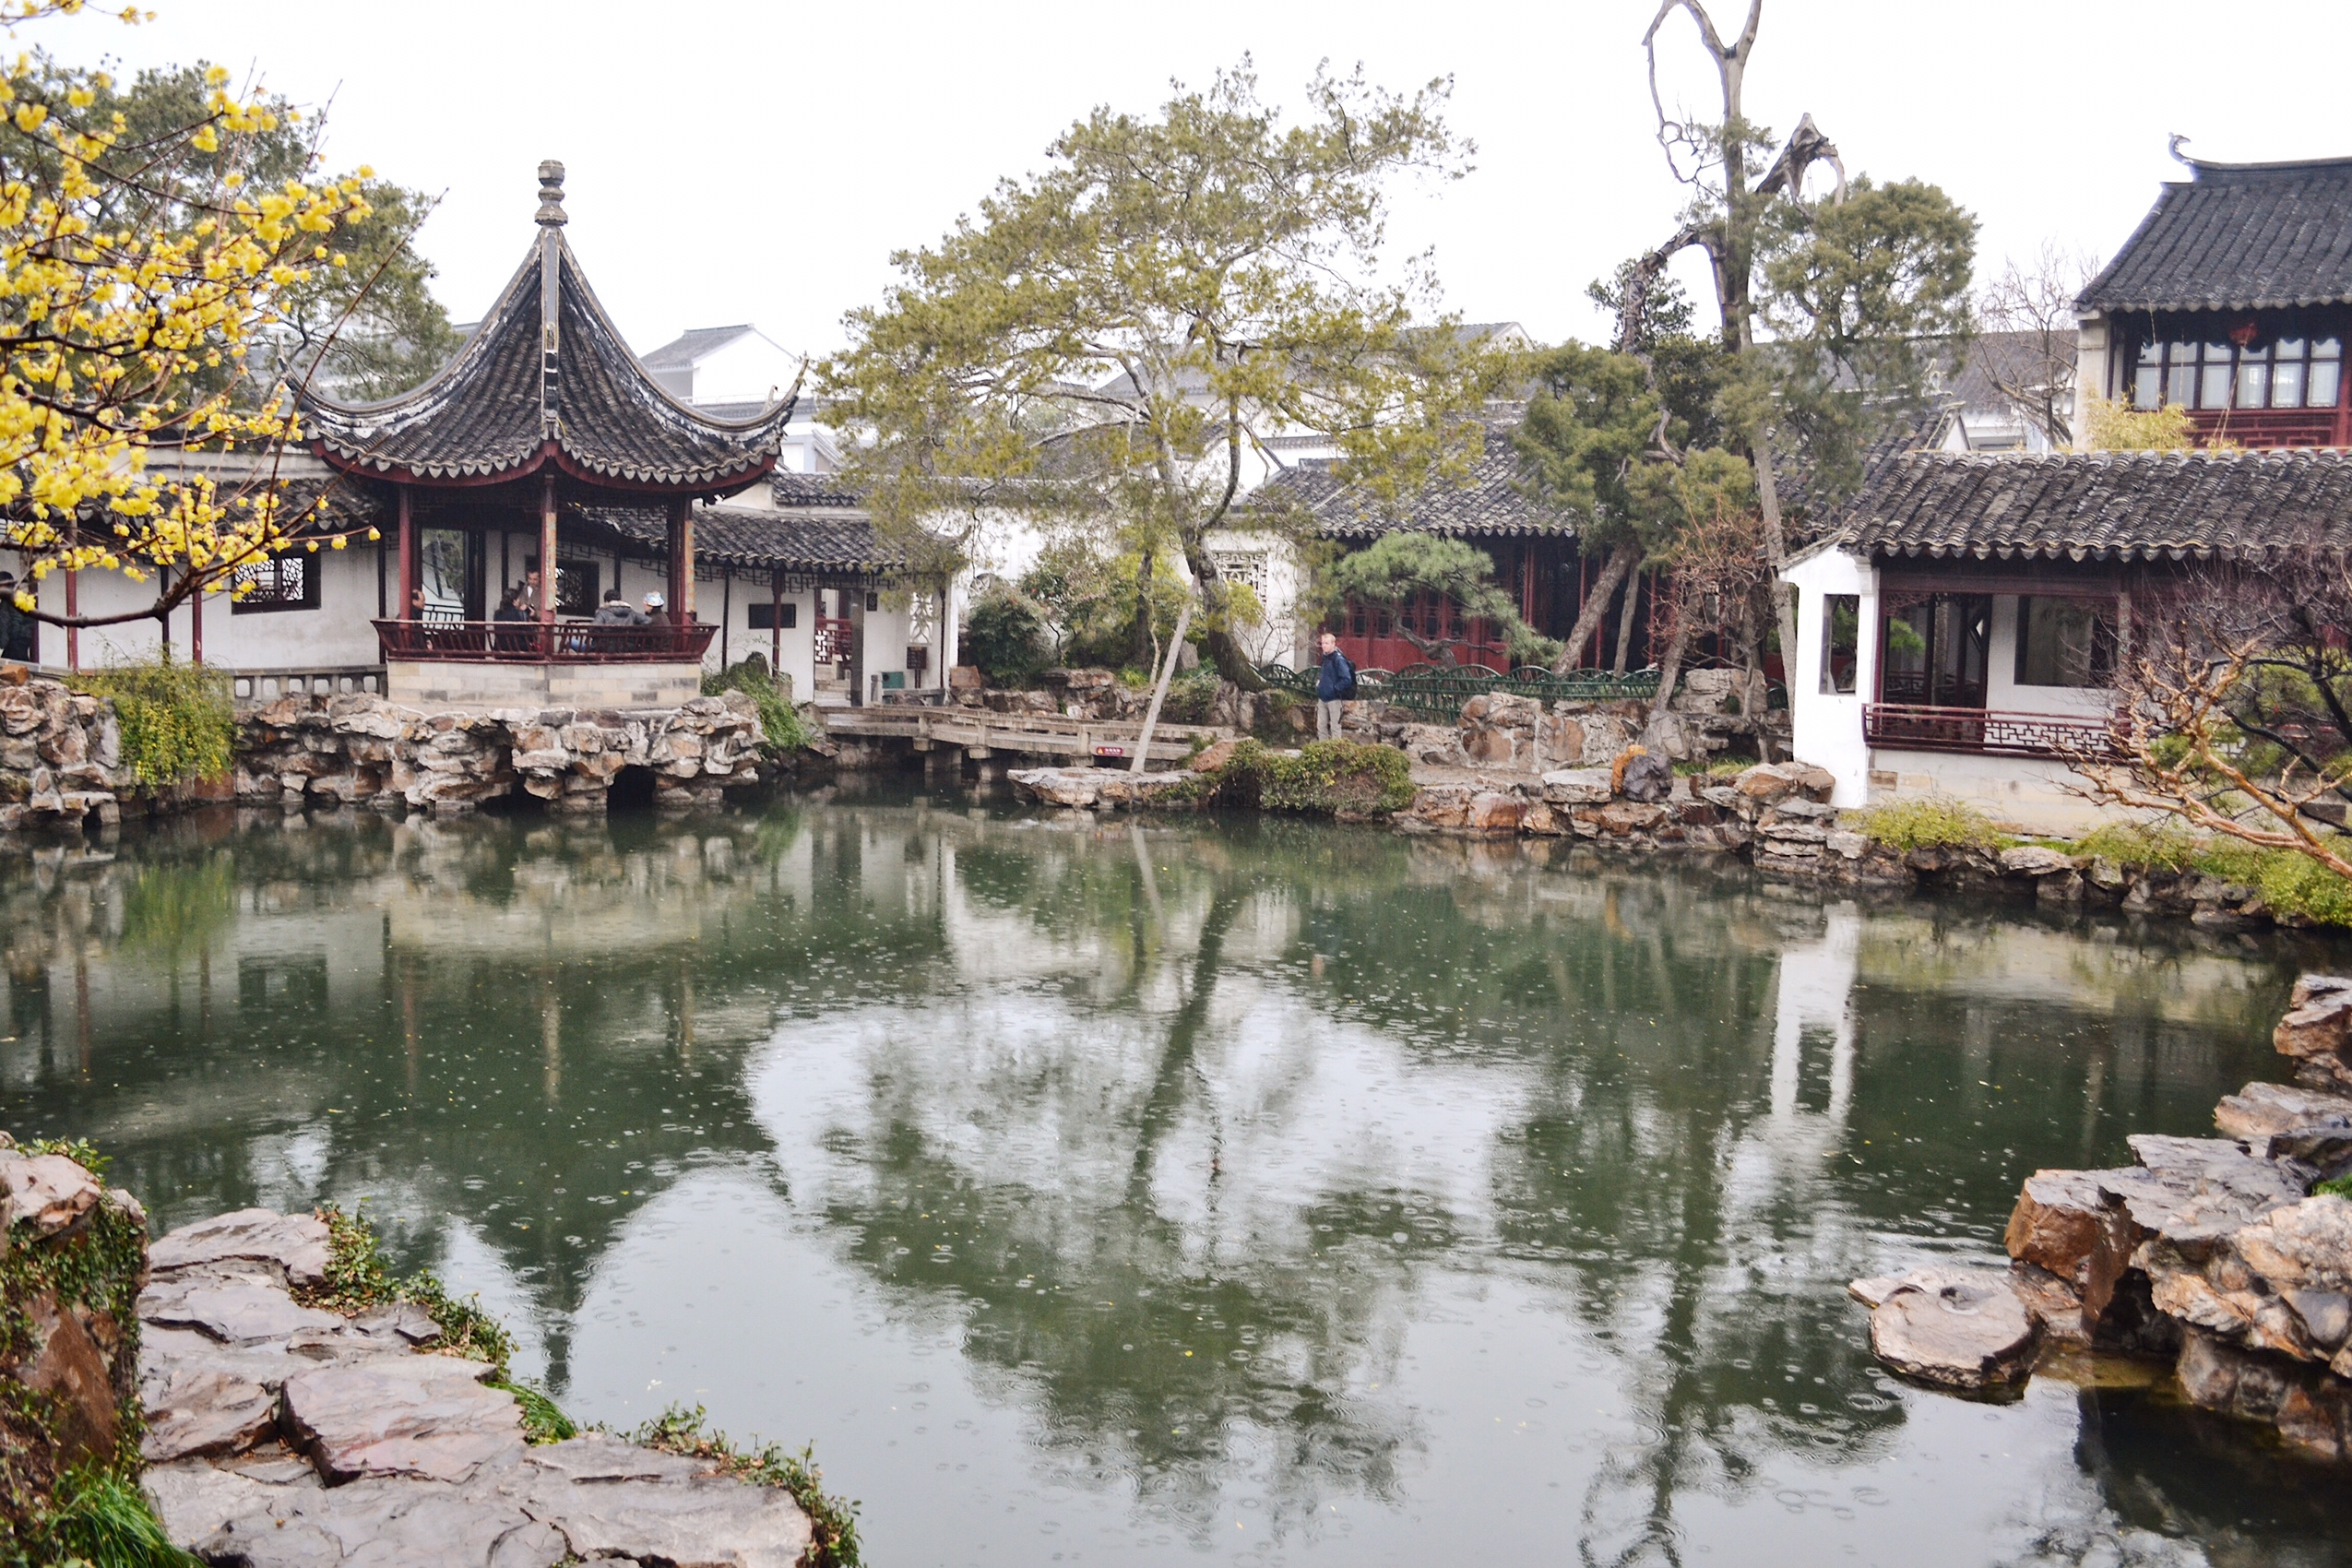 image of master of the nets in Suzhou in China